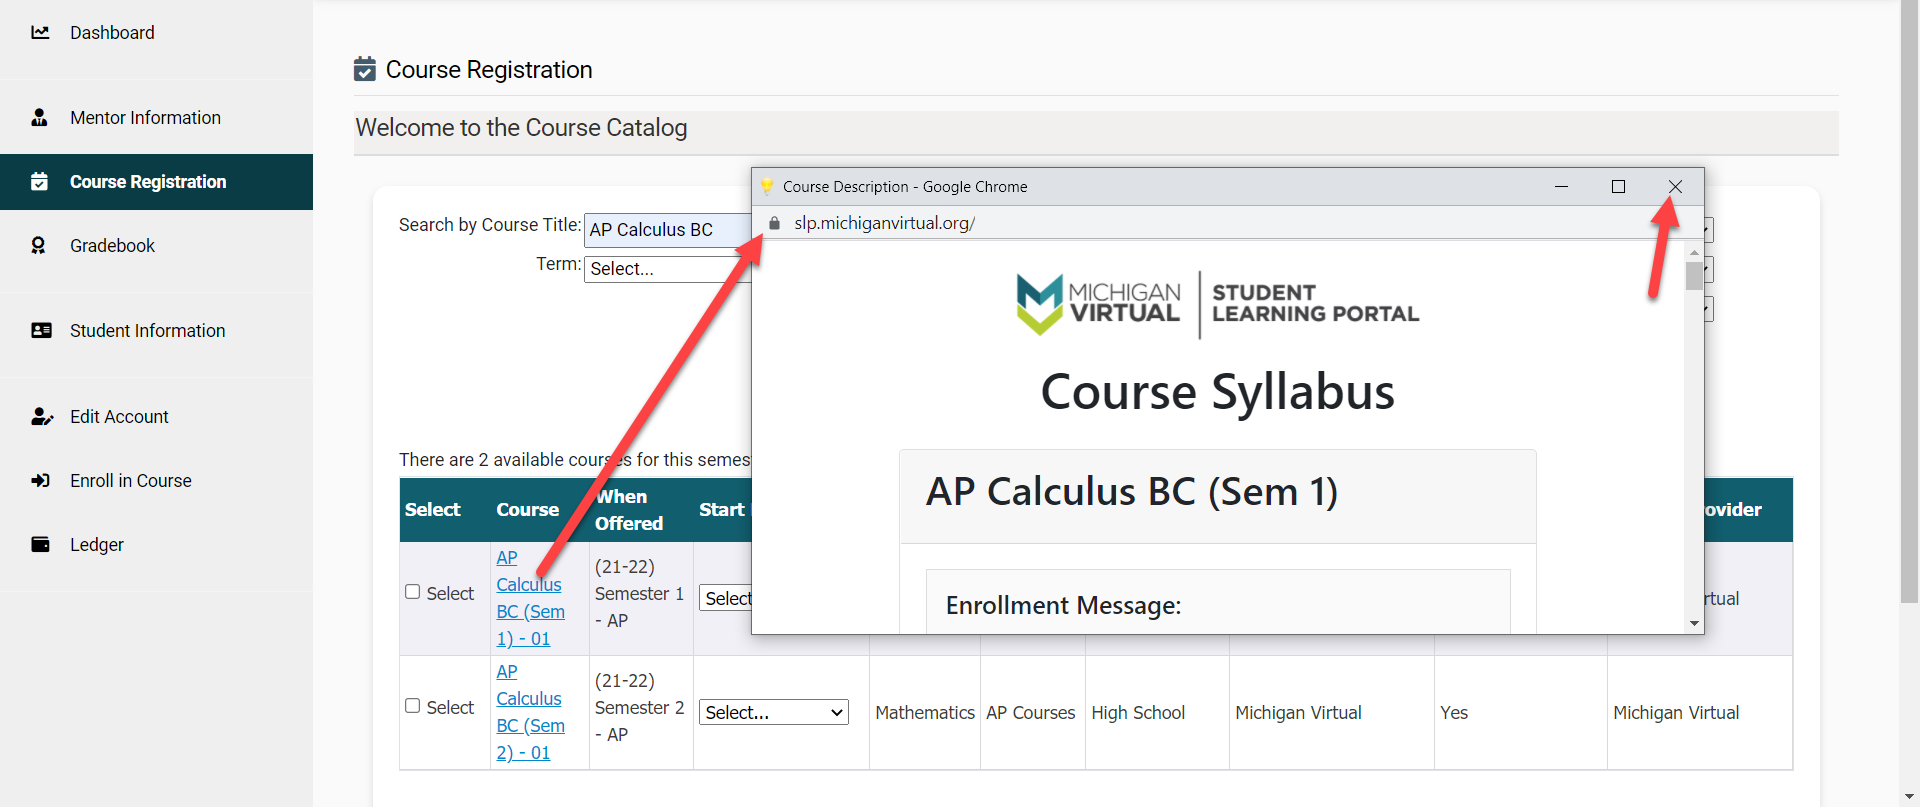 """The Course Catalog page is displayed with an arrow pointing to the linked name in the """"Course"""" column. The Course Syllabus window for the select course is displayed showing details about the course with an arrow pointing to the X in the upper right corner to close out the window."""